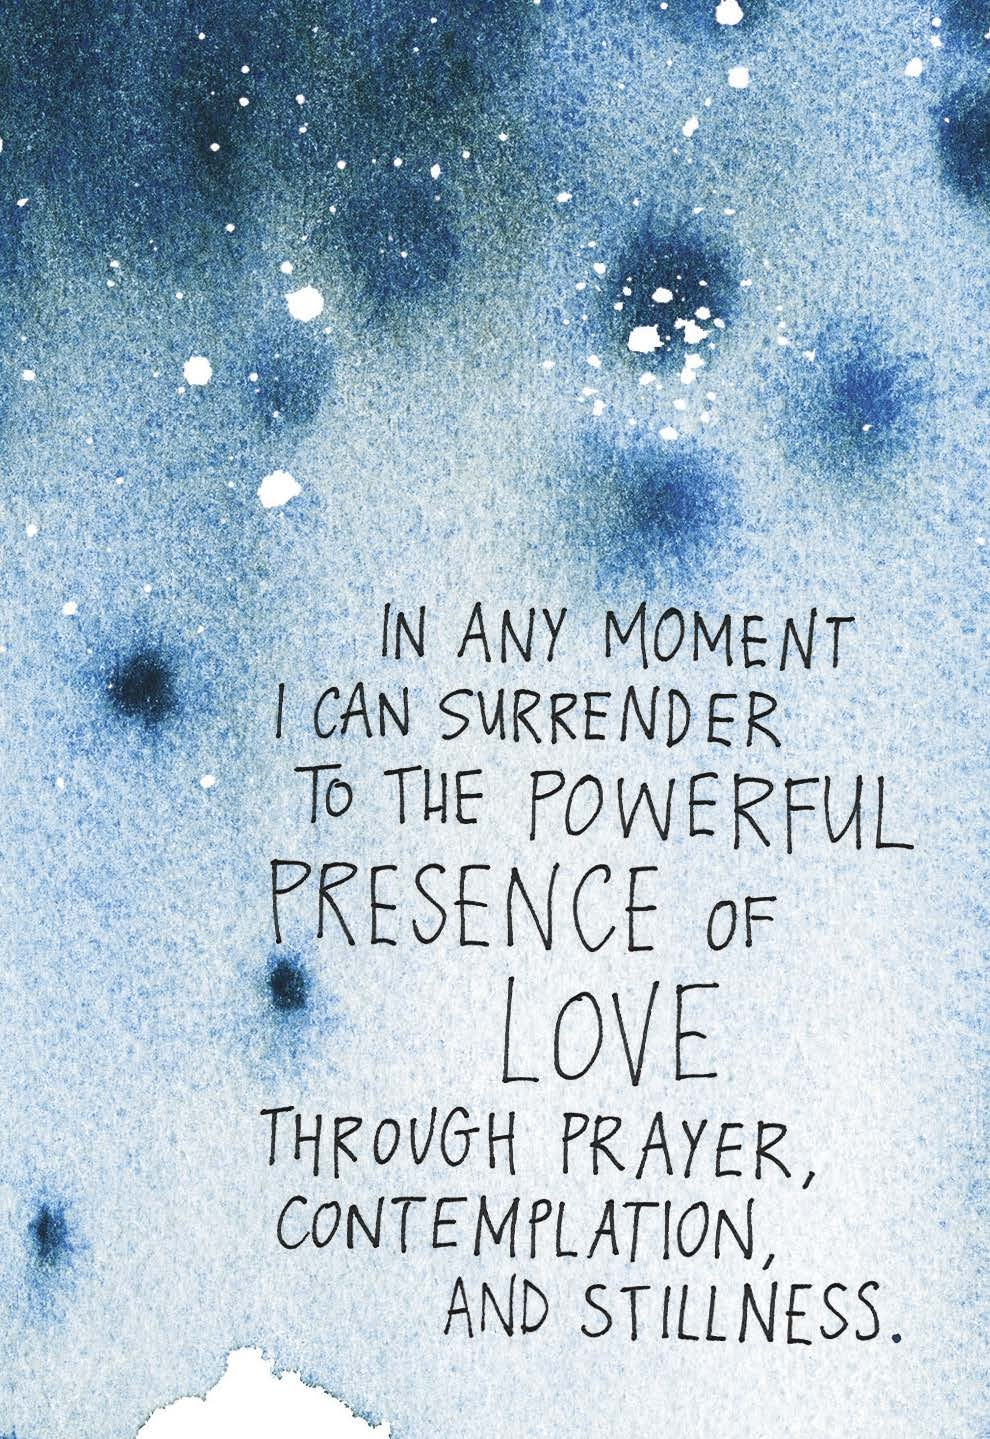 surrender meditation gabby bernstein card deck